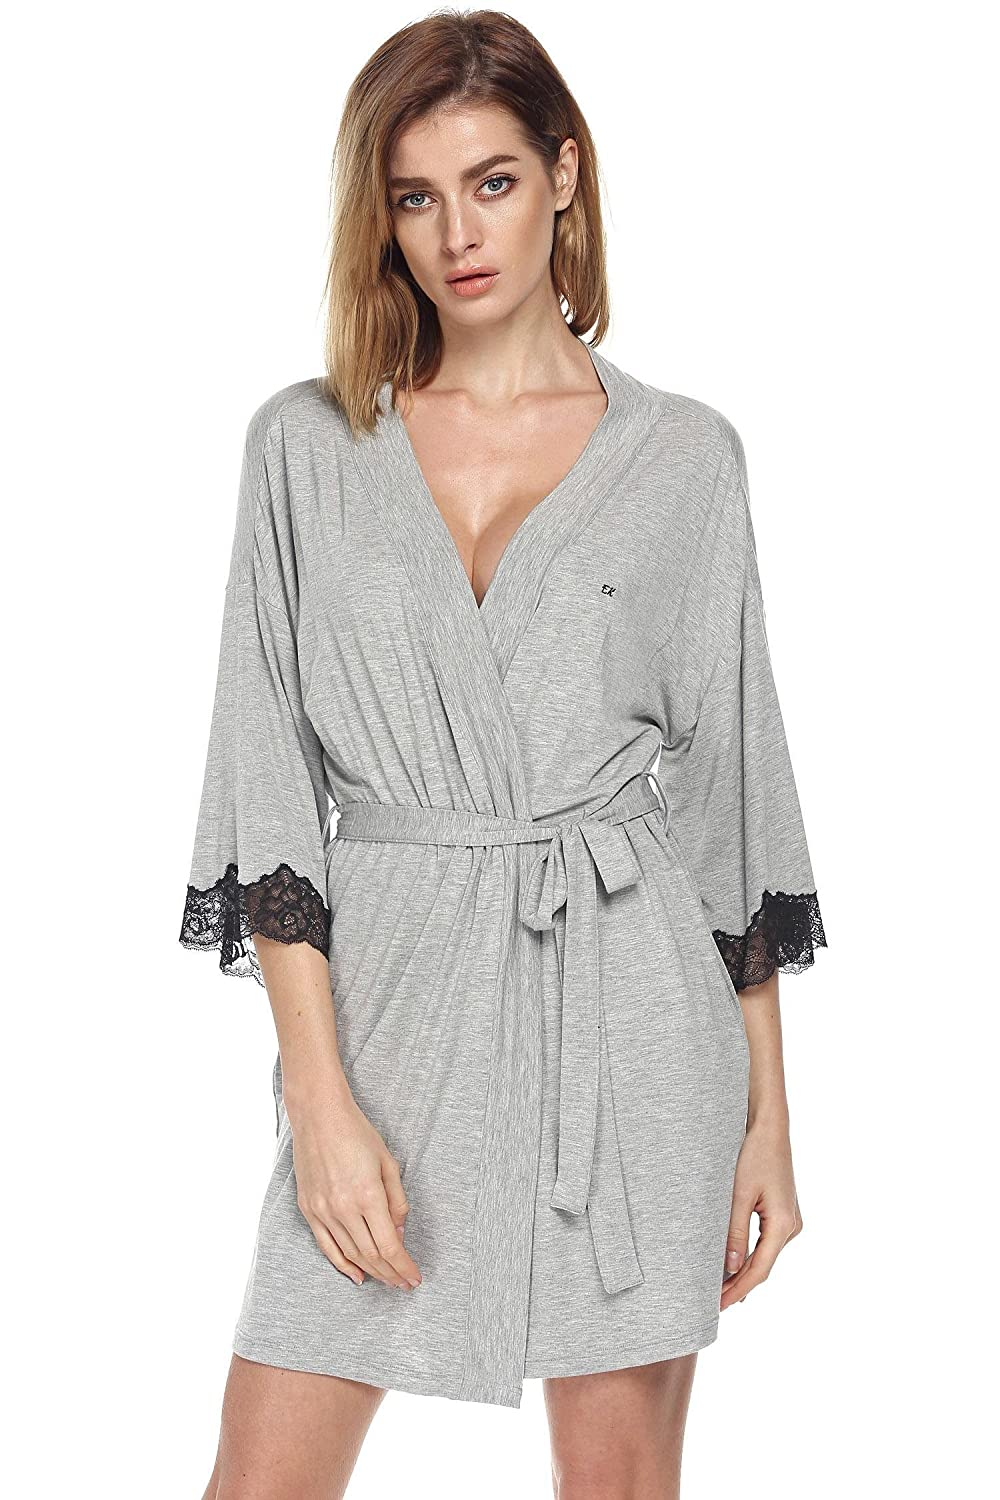 Ekouaer Women's Viscose Kimono Short Robe Sleepwear Dressing Gown (S-XXL) EK002748#